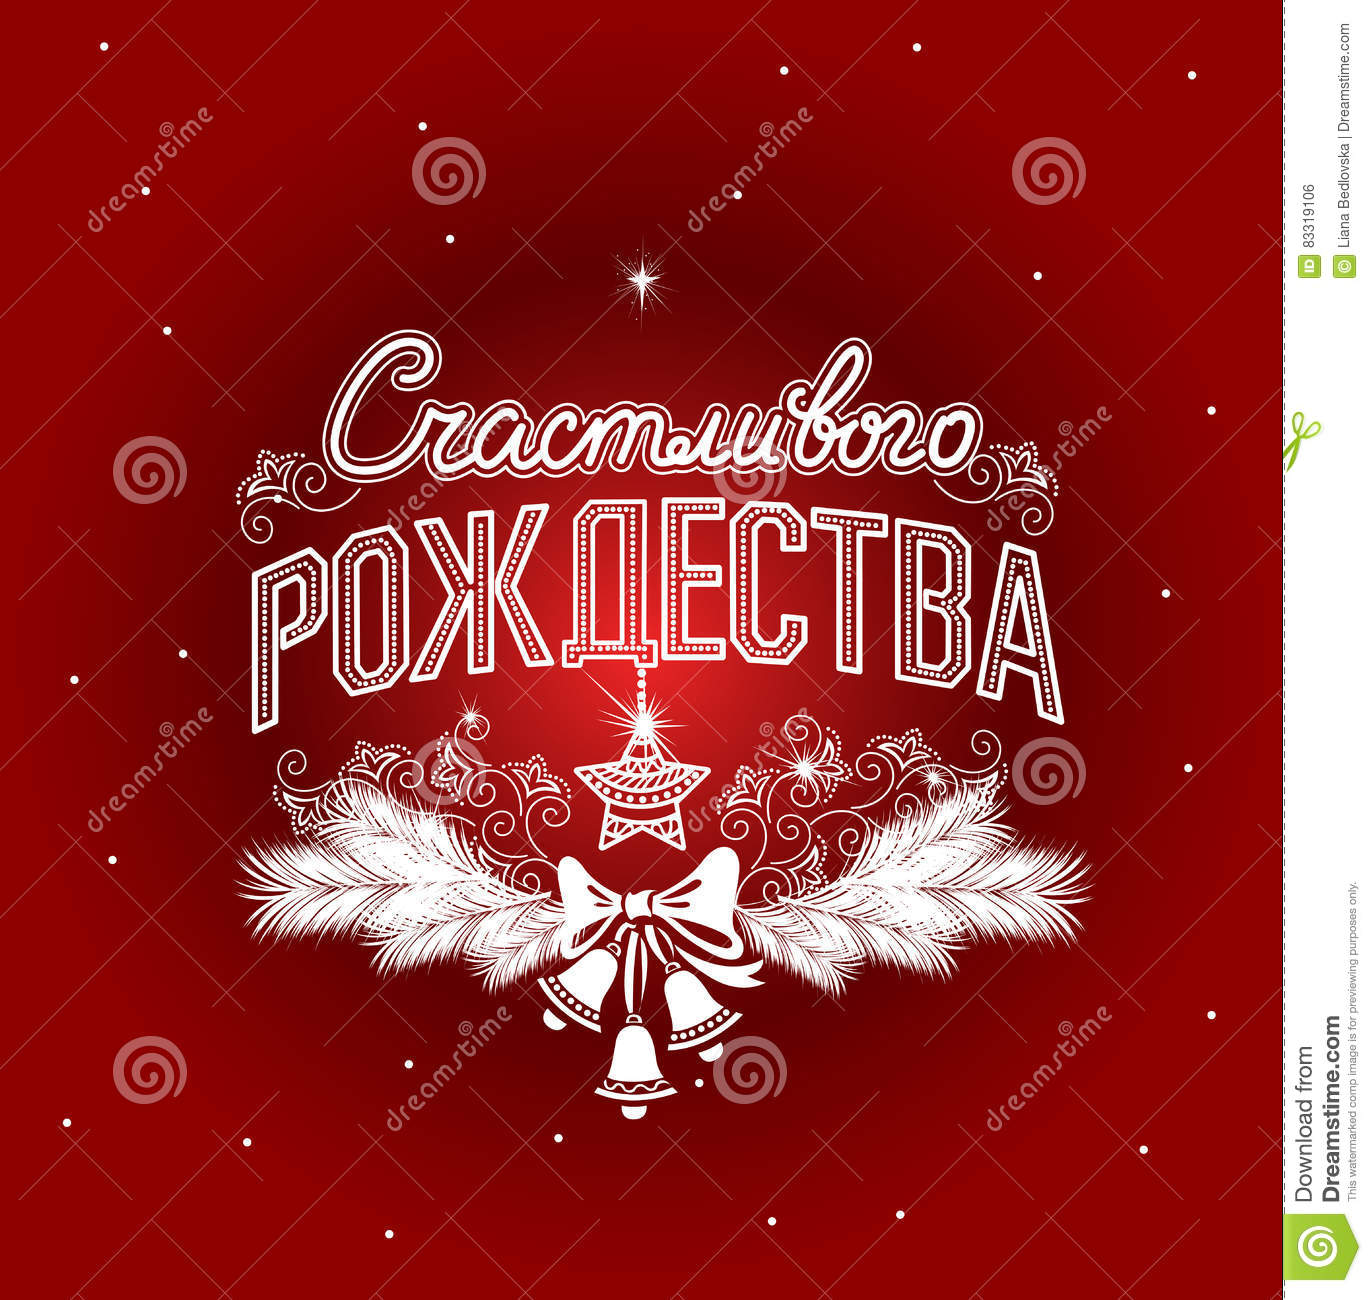 Merry Christmas In Russian.Merry Christmas In Russian Stock Vector Illustration Of